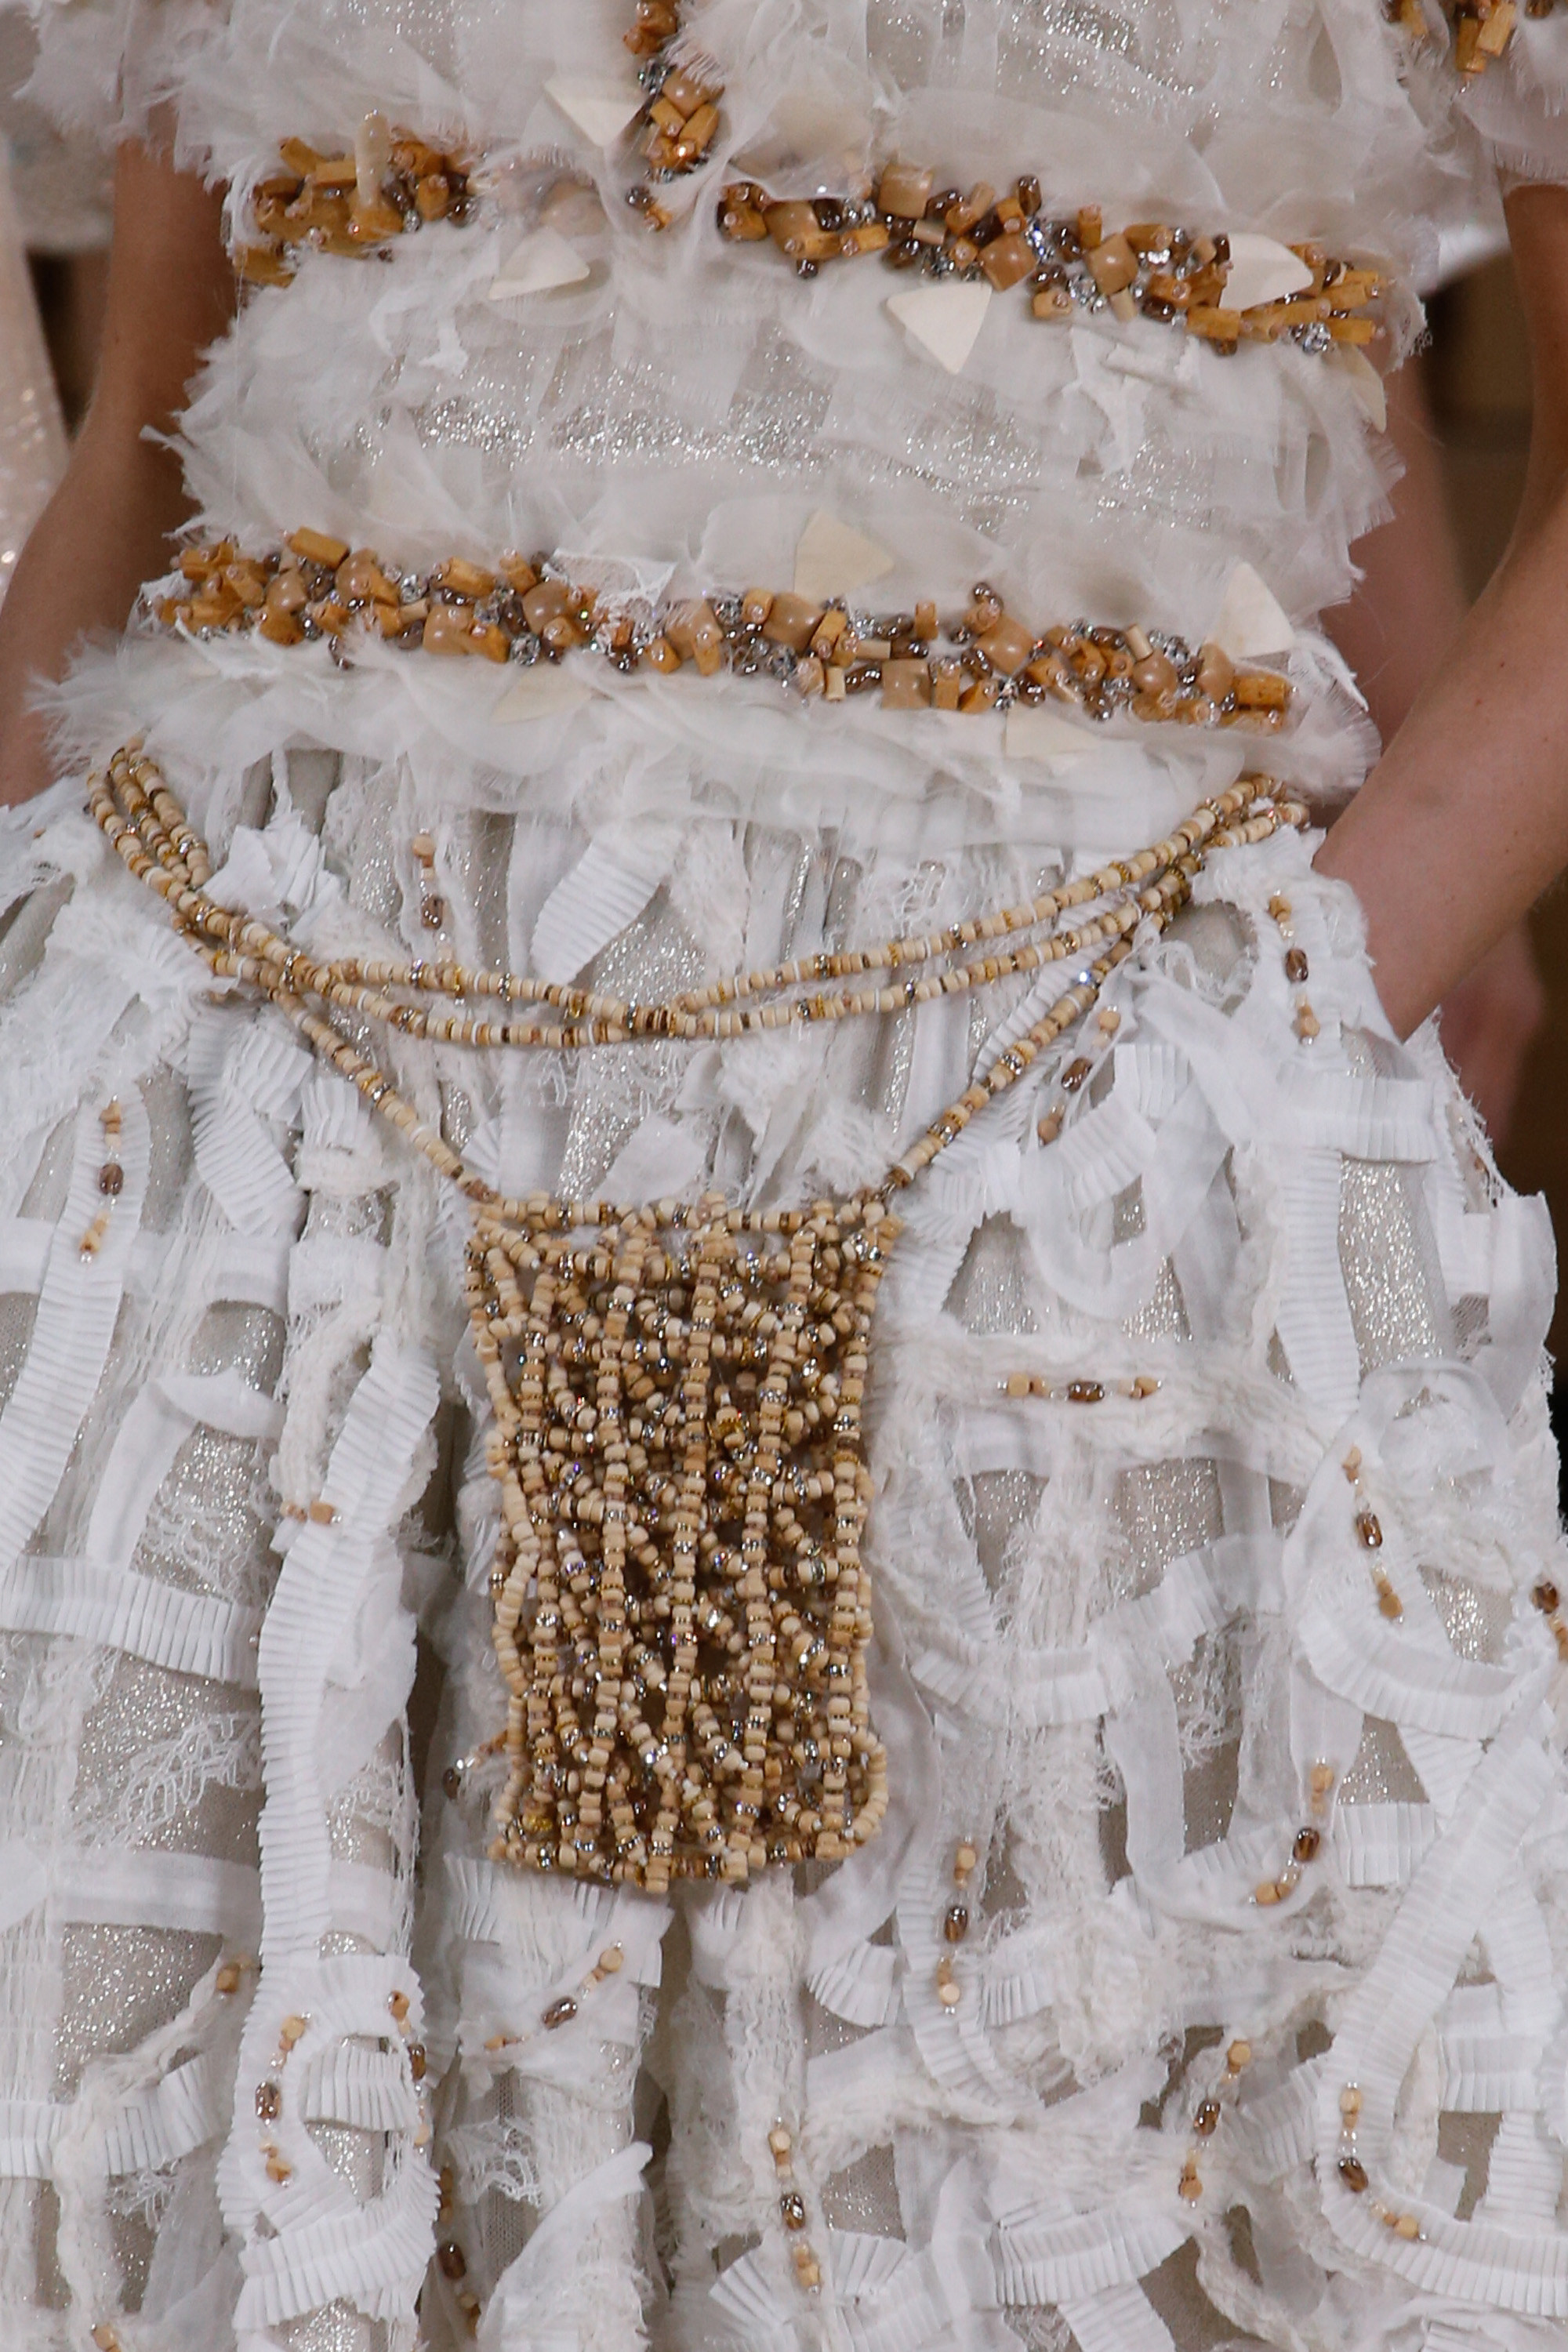 ChanelSS16_Chanel Detail 03